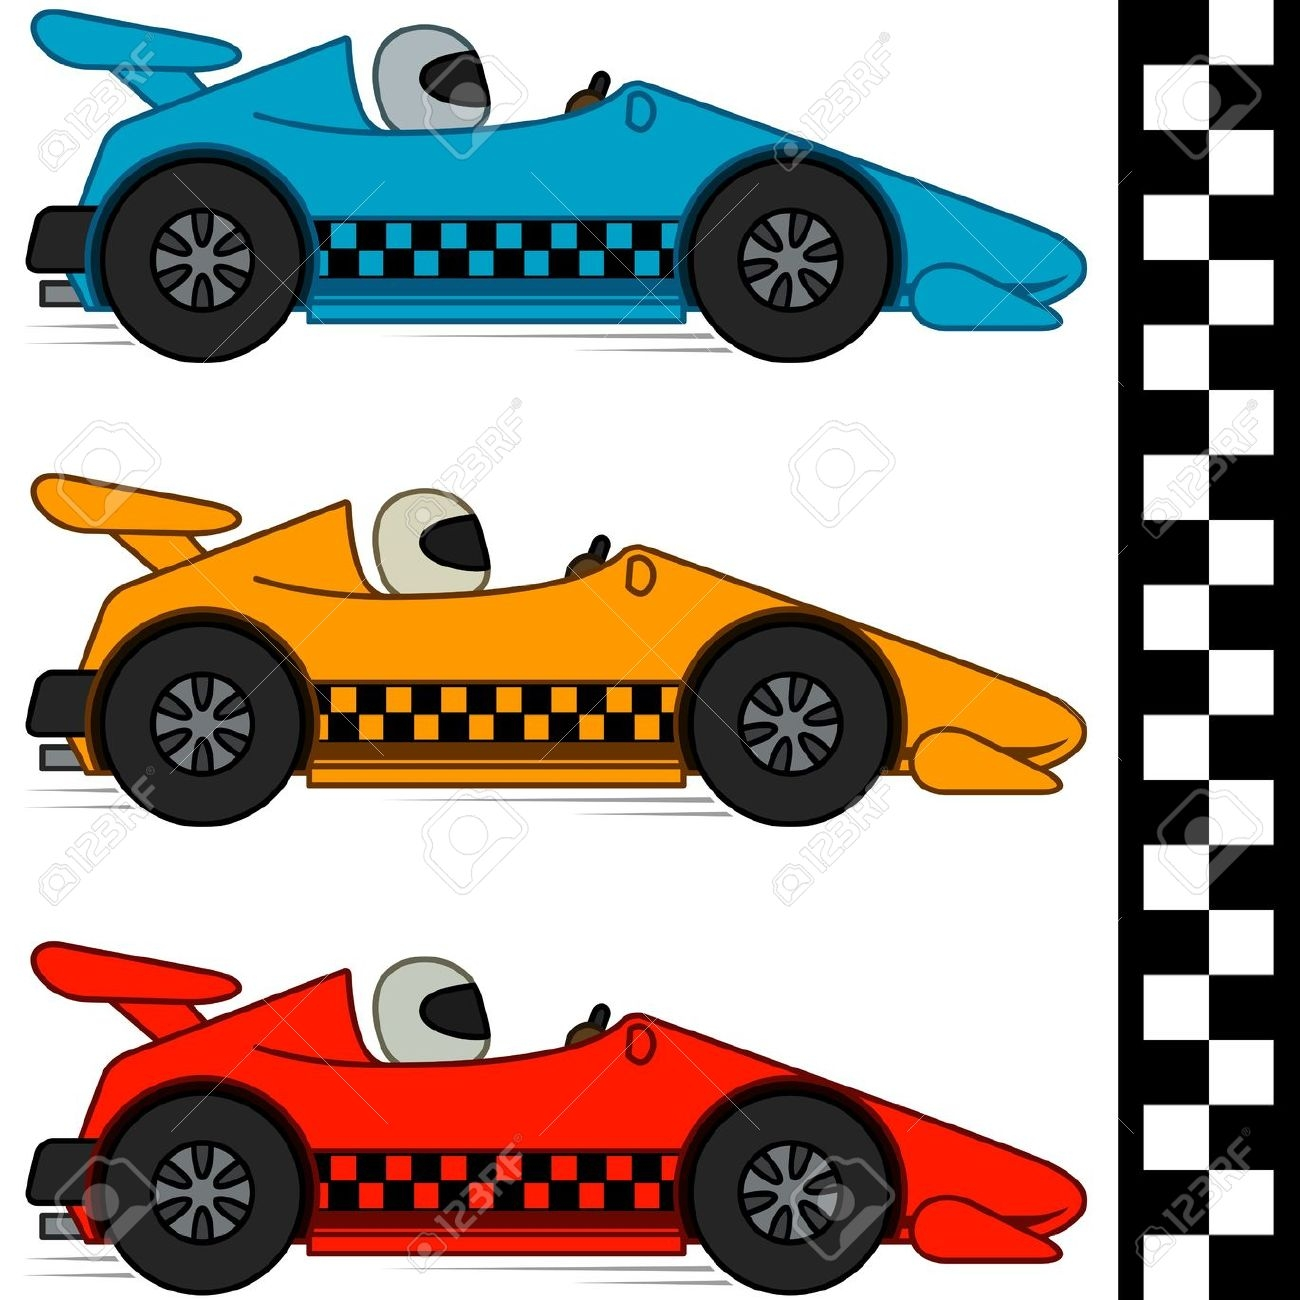 Blue Race Car Clipart Panda .